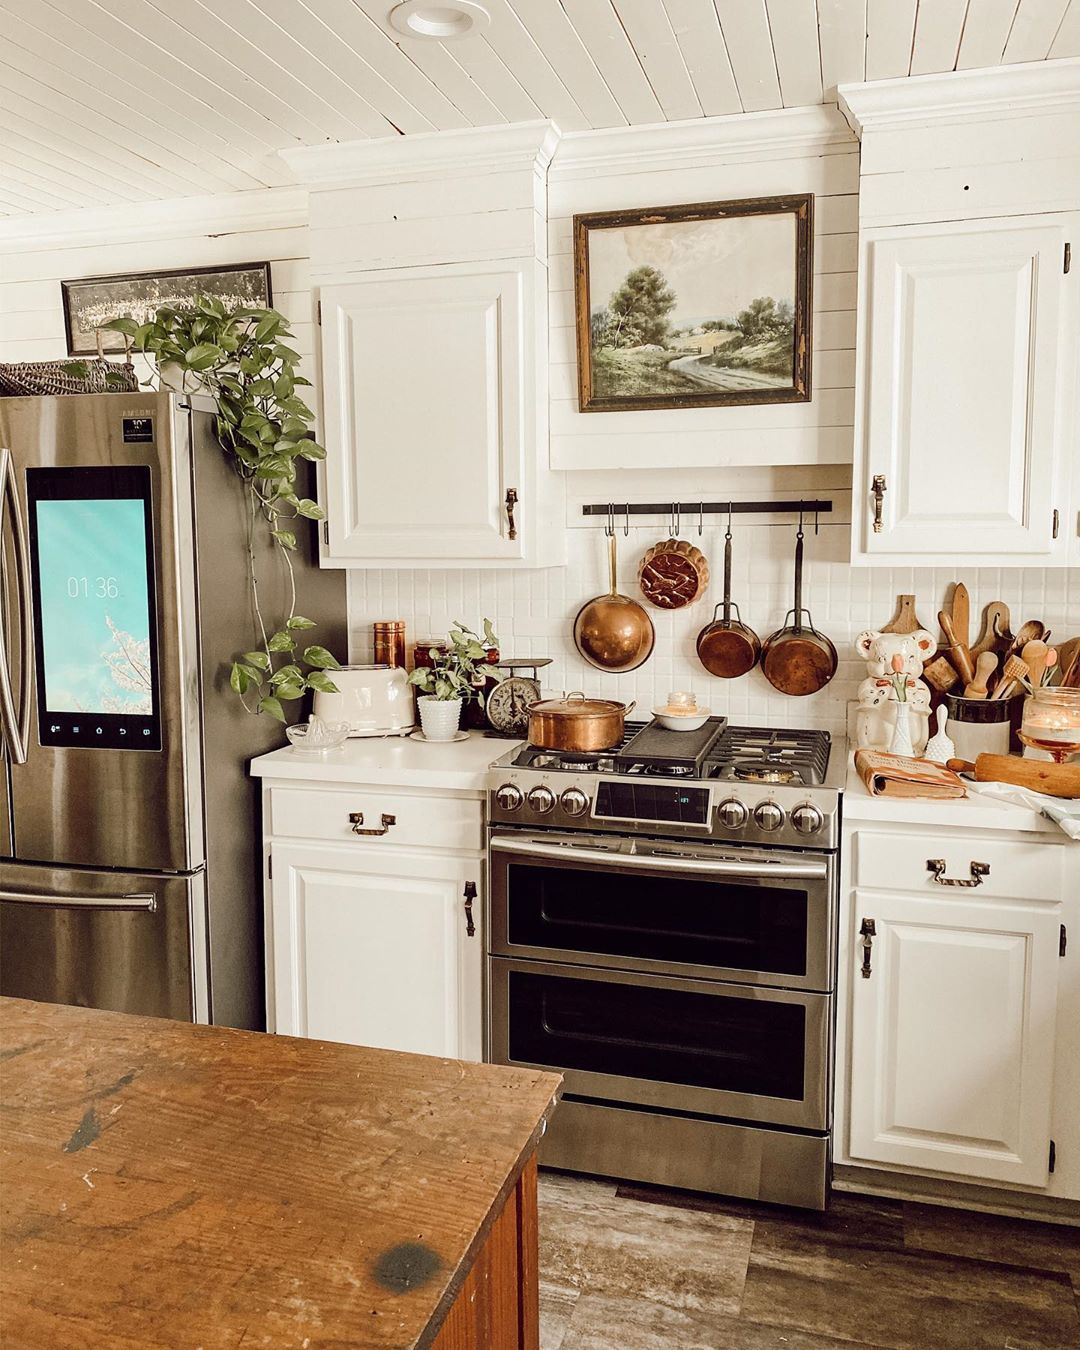 Danielle Lea S Instagram Post Hey Guys We Are Still Loving Our Smart Samsunghomeappliances Range Ad Di In 2020 Kitchen Design Home Decor Dyi Kitchen Remodel